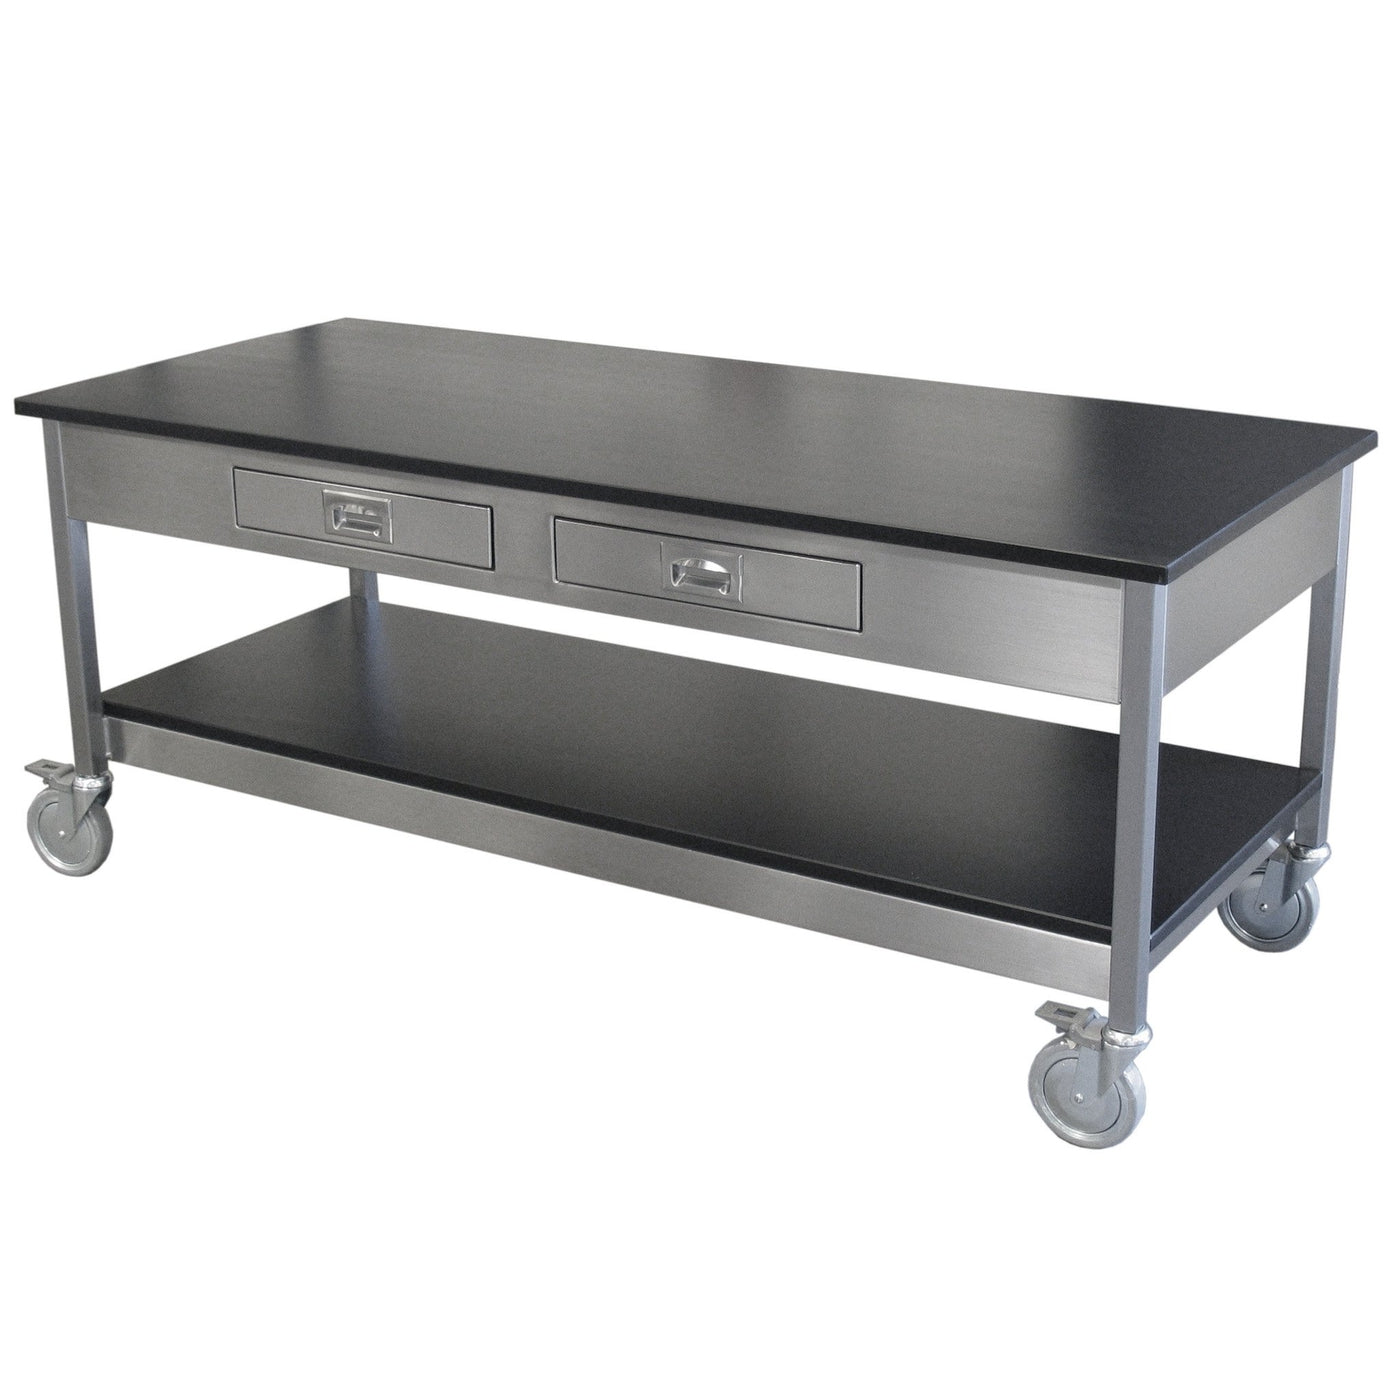 Epoxy Lab Table Mortech Manufacturing Company Inc Quality - Stainless steel table accessories